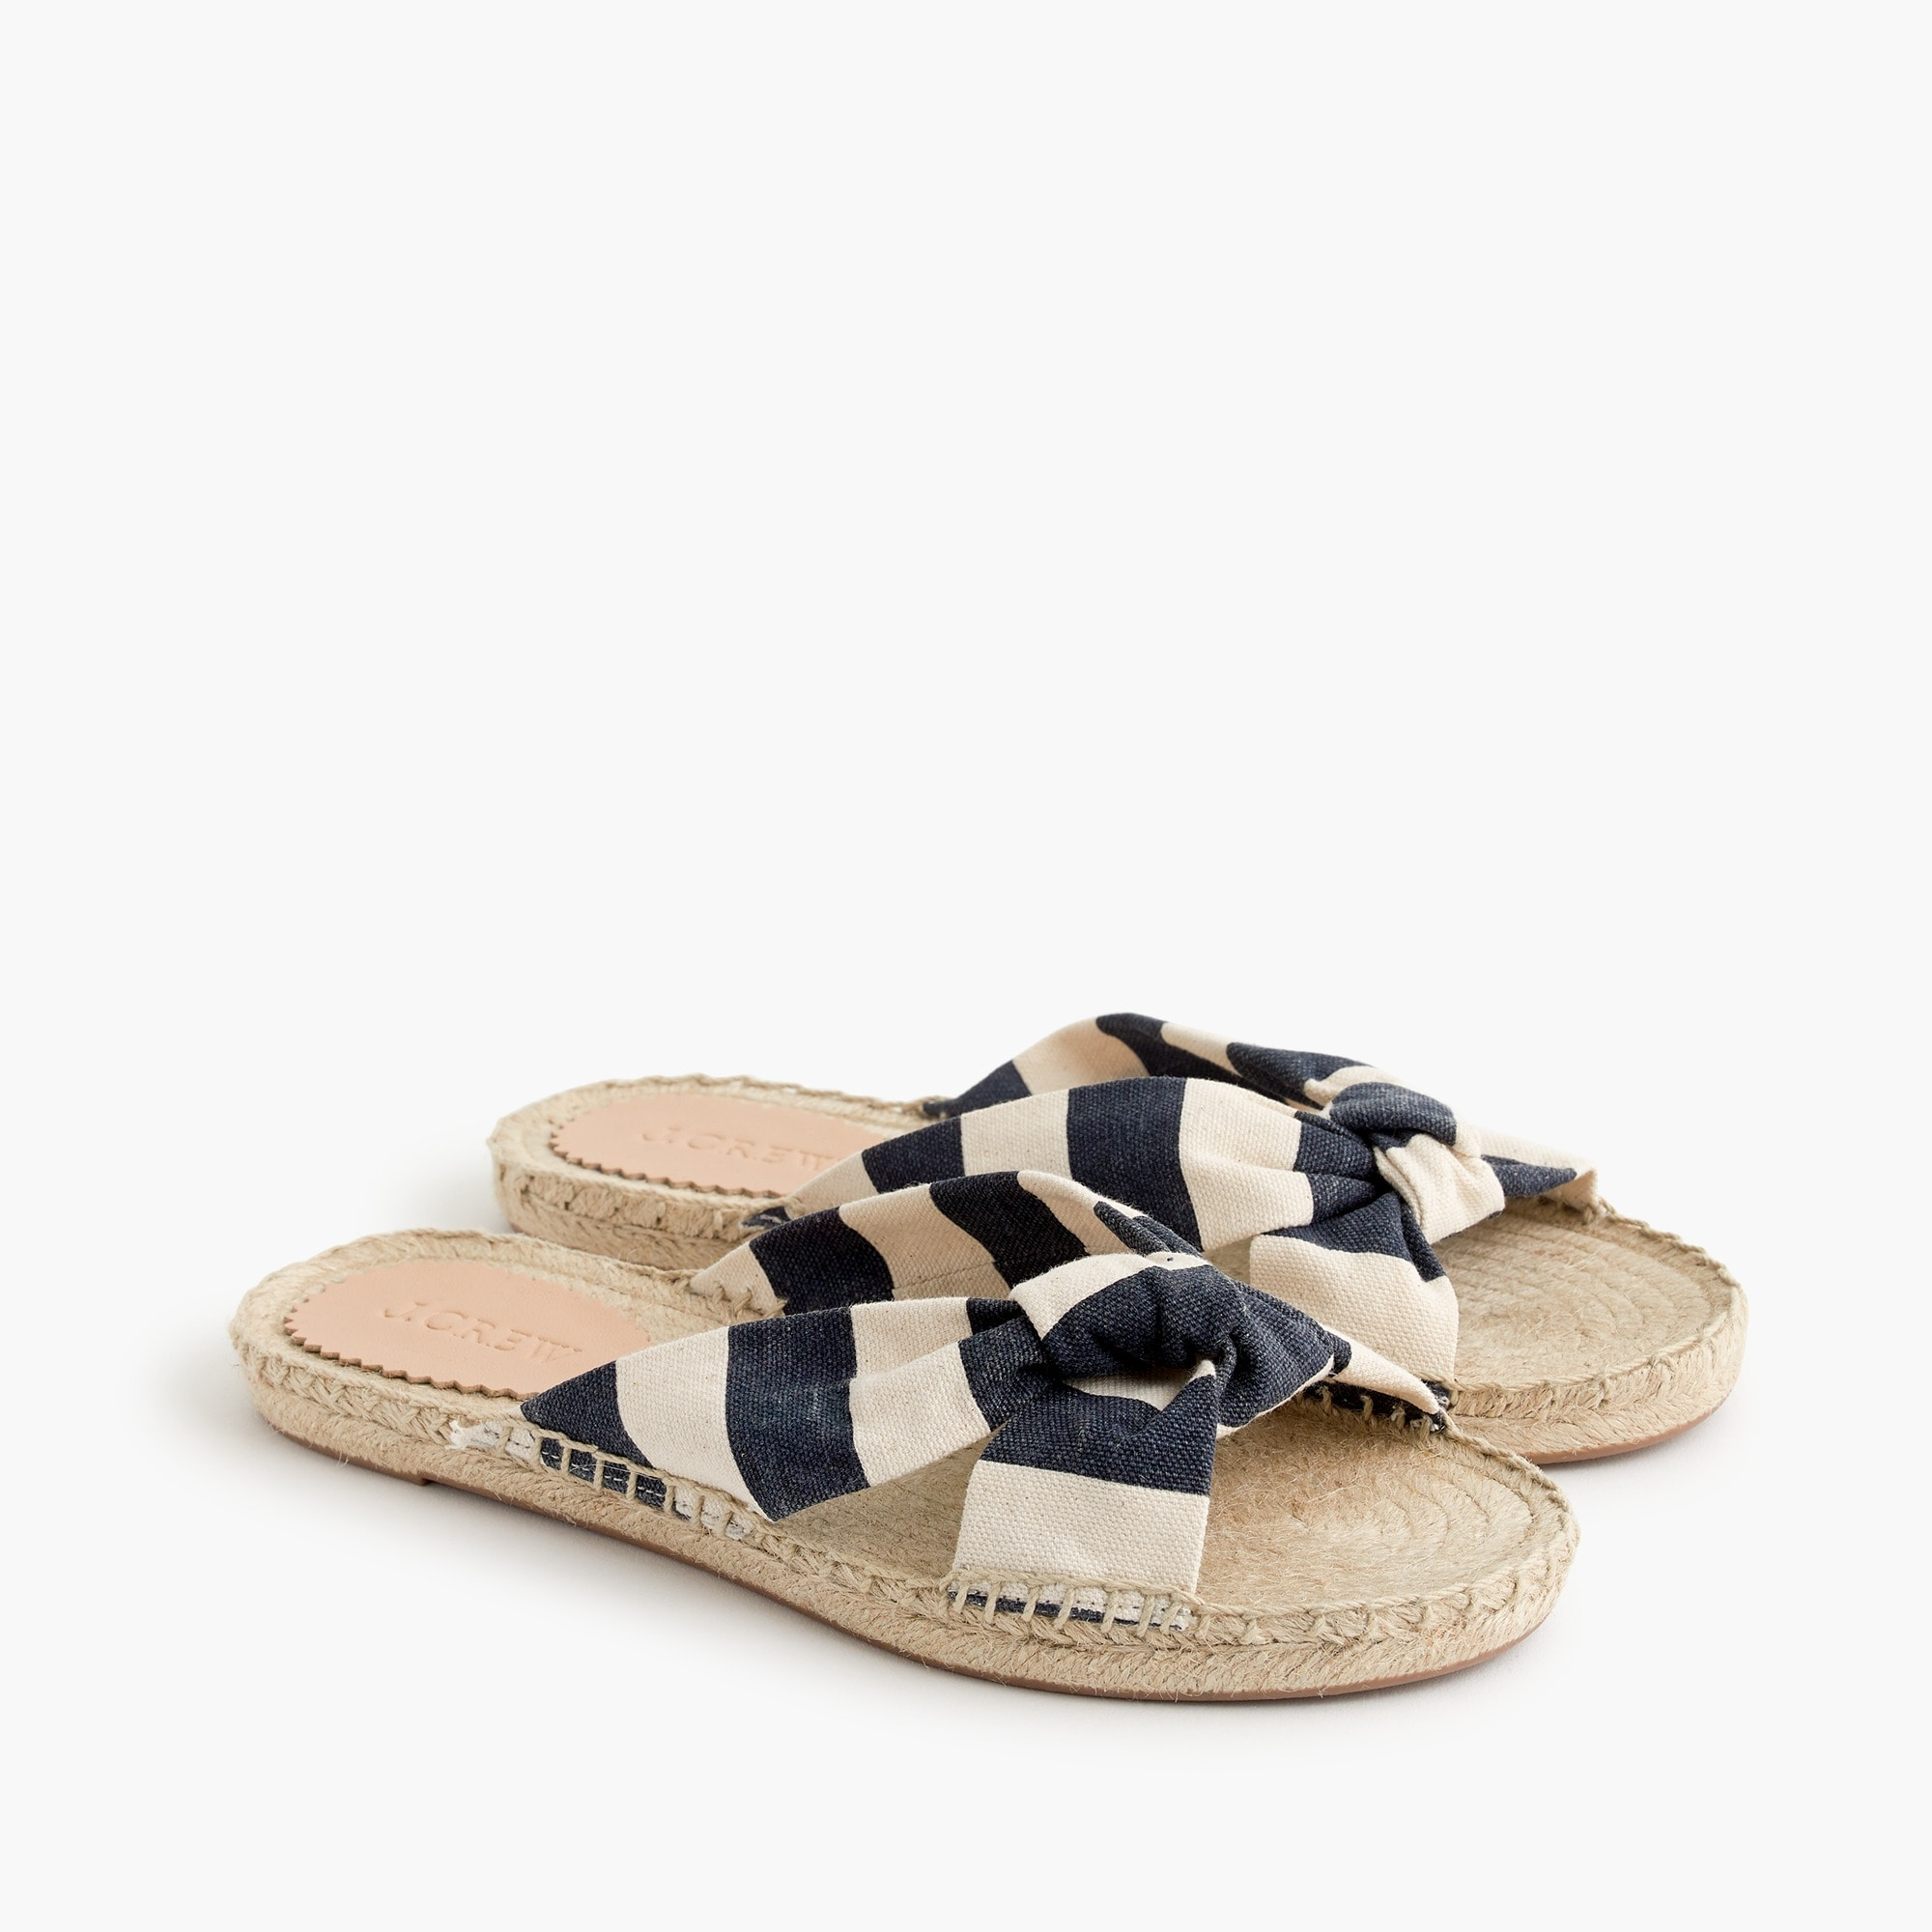 women's knotted espadrille slides in stripe - women's sandals